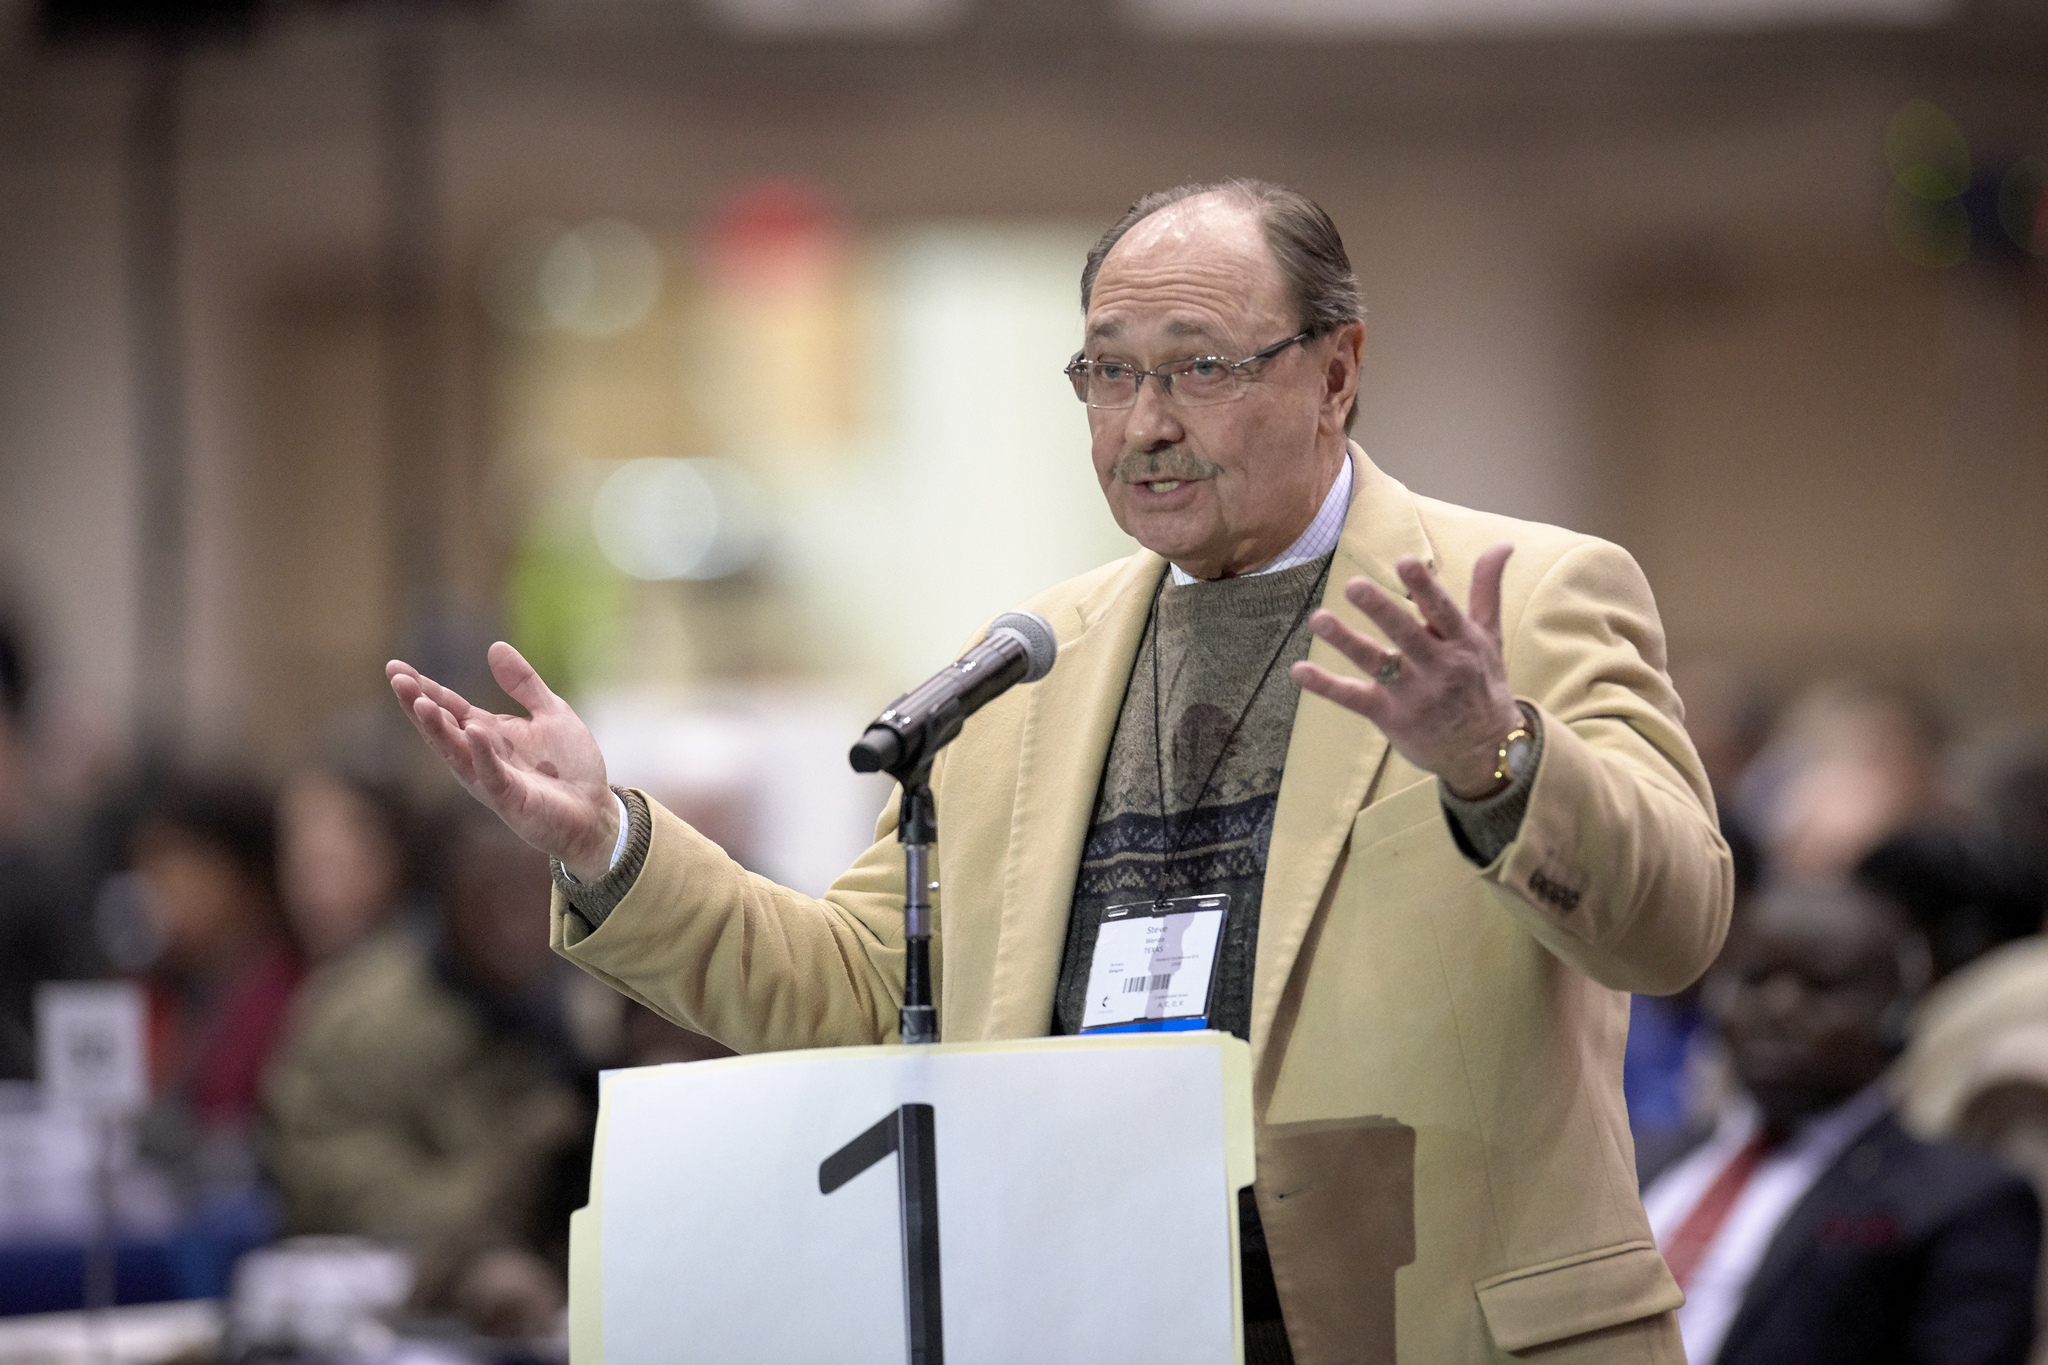 The Rev. Stephen Wende, a delegate from the Texas Conference, speaks at the 2019 United Methodist General Conference in St. Louis. Wende spoke against postponing a discussion of the Traditional Plan, which he supports. Photo by Paul Jeffrey, UMNS.